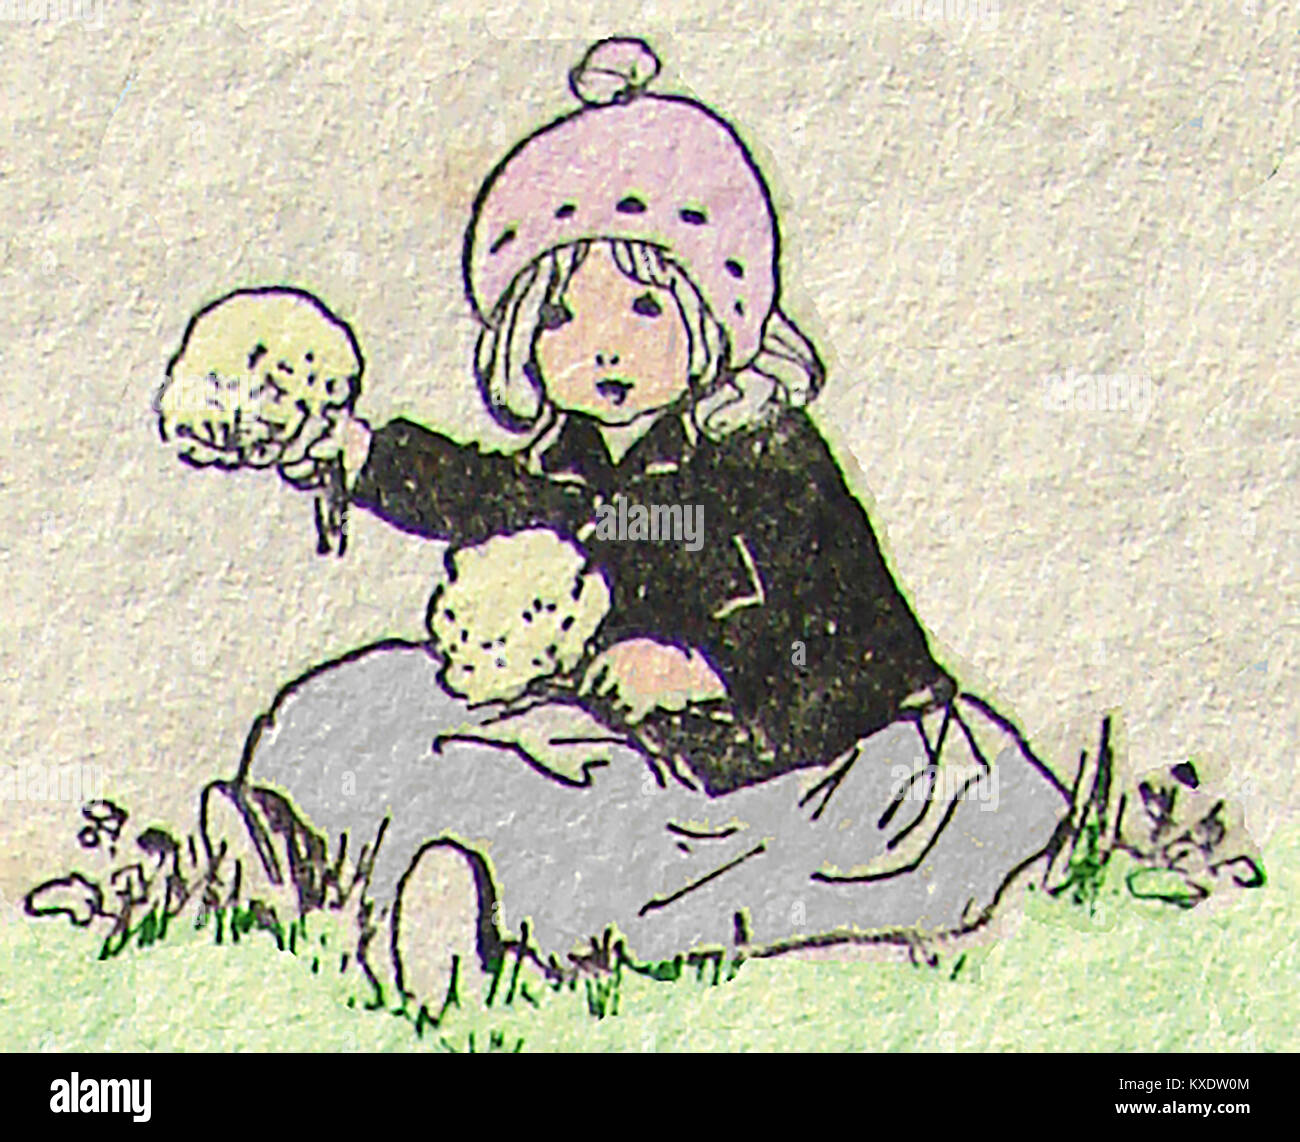 Children at play - a girl sitting in the grass picking flowers - Stock Image